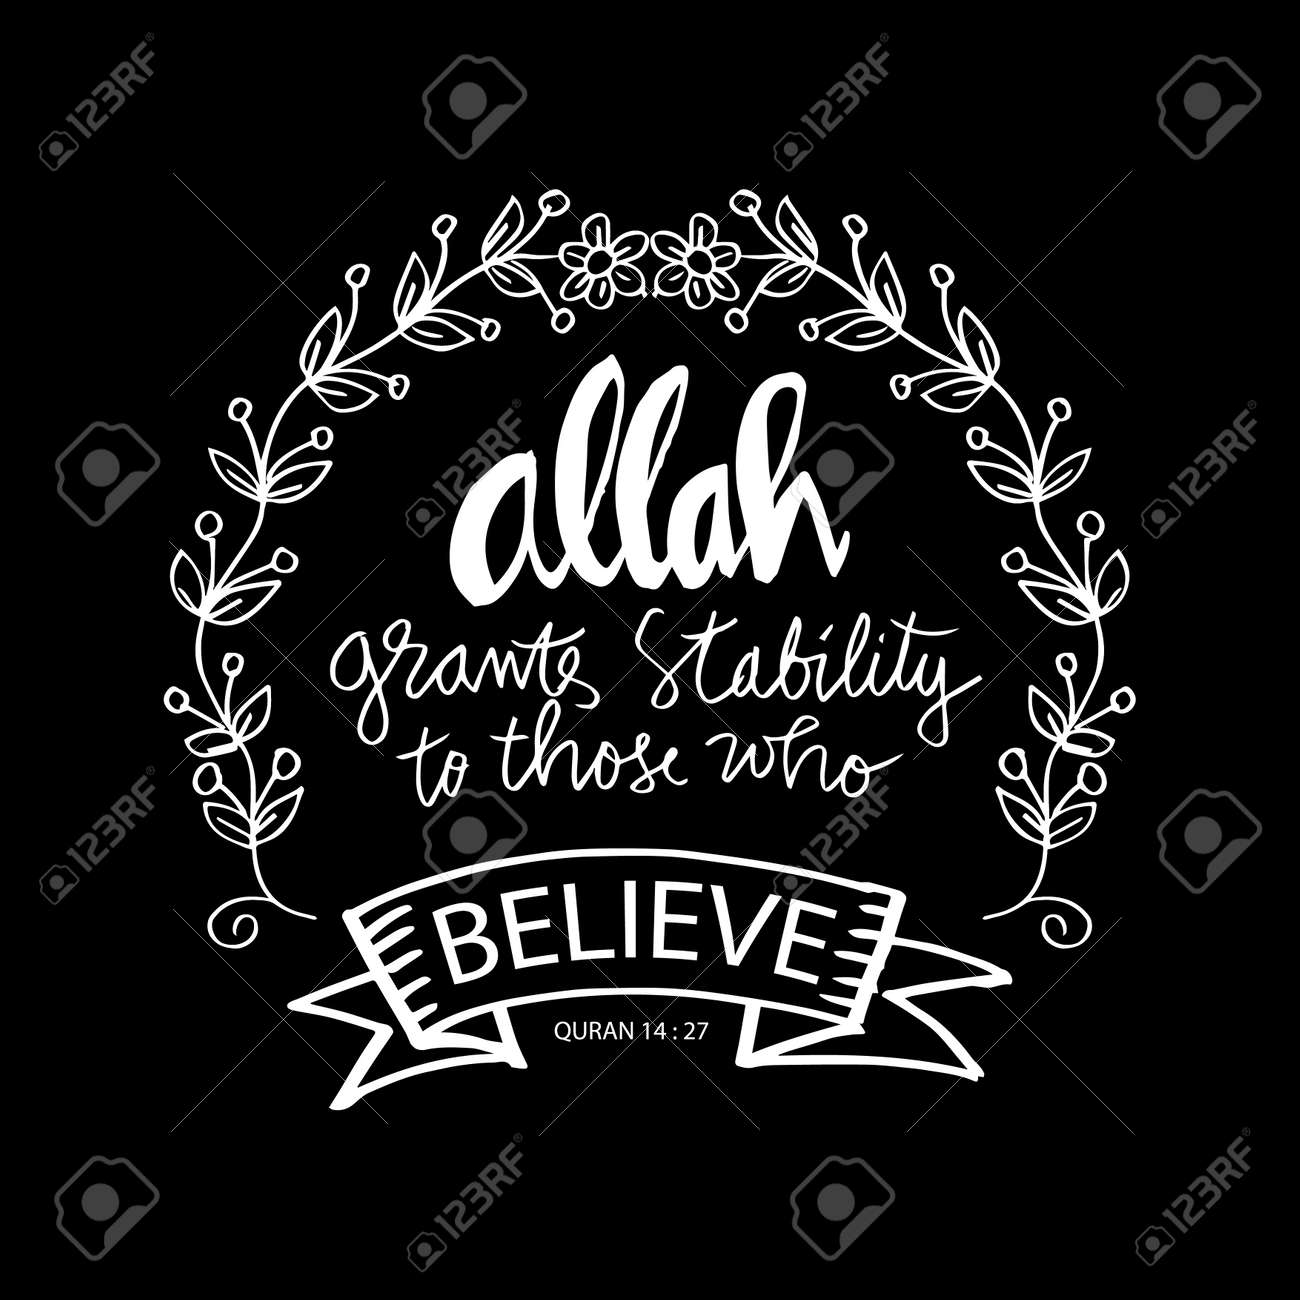 Allah Grants Stability To Those Who Believe Islamic Quran Quotes